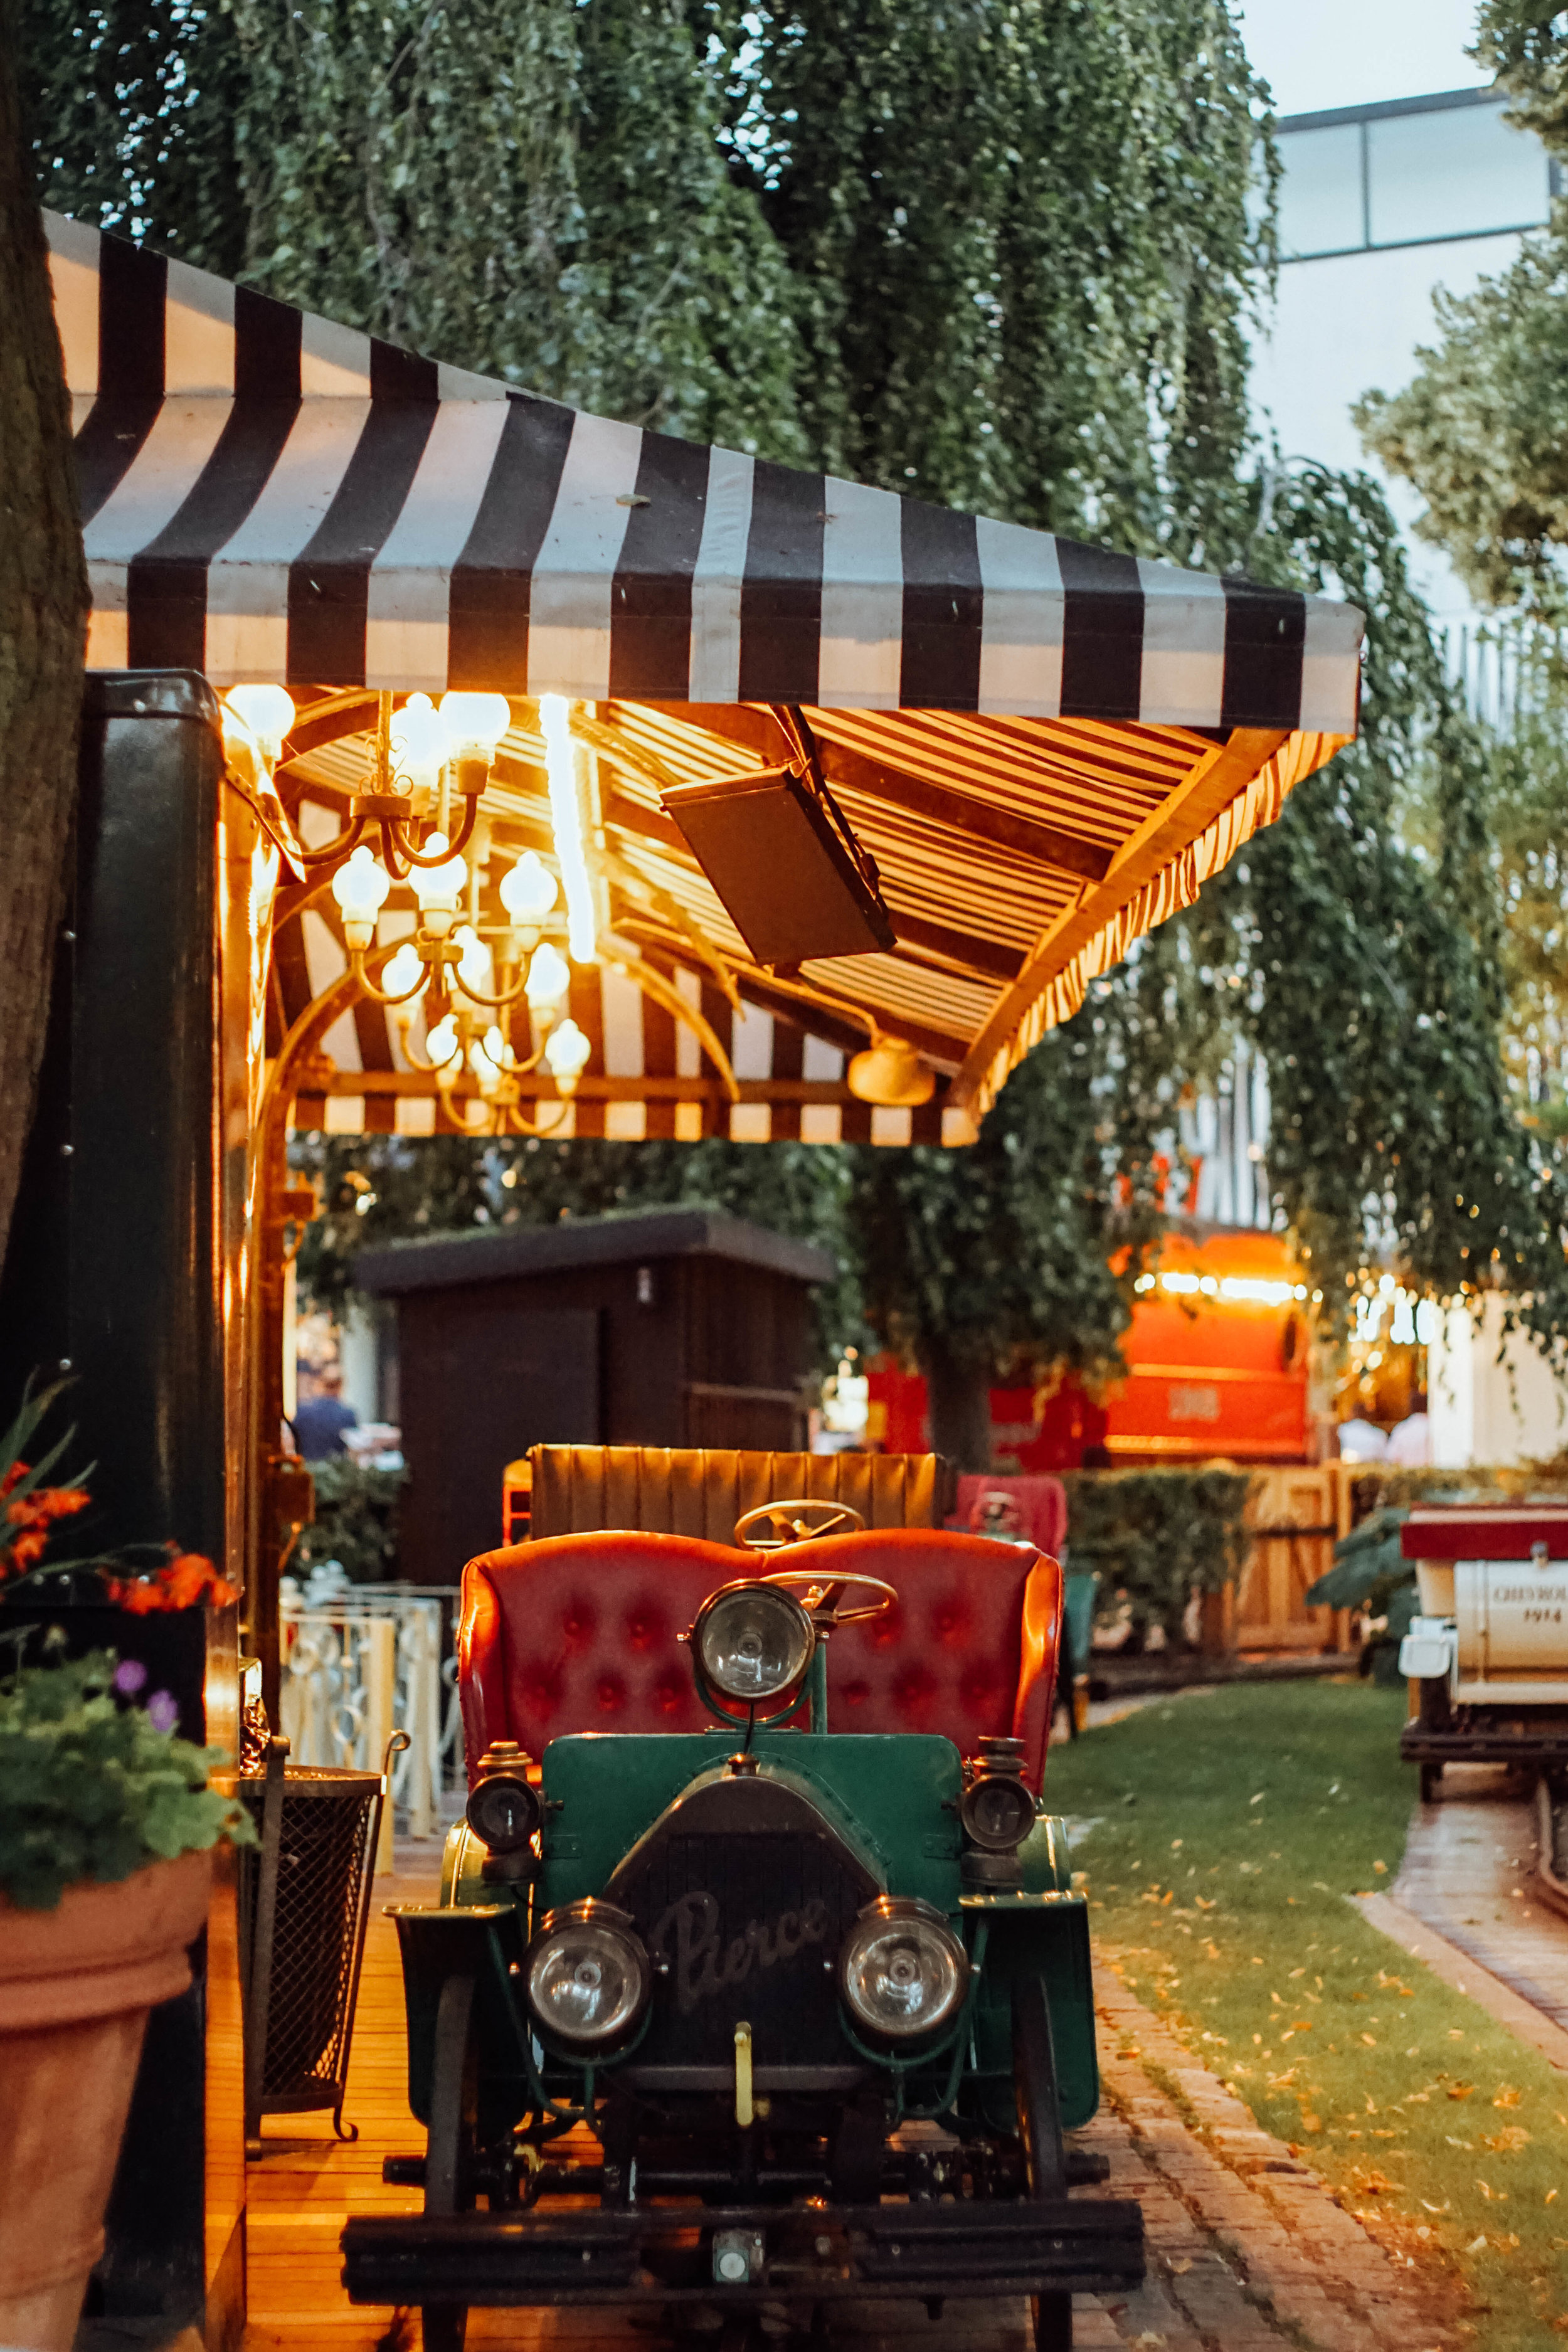 A shot of the Vintage Car ride at Tivoli. An old favourite!